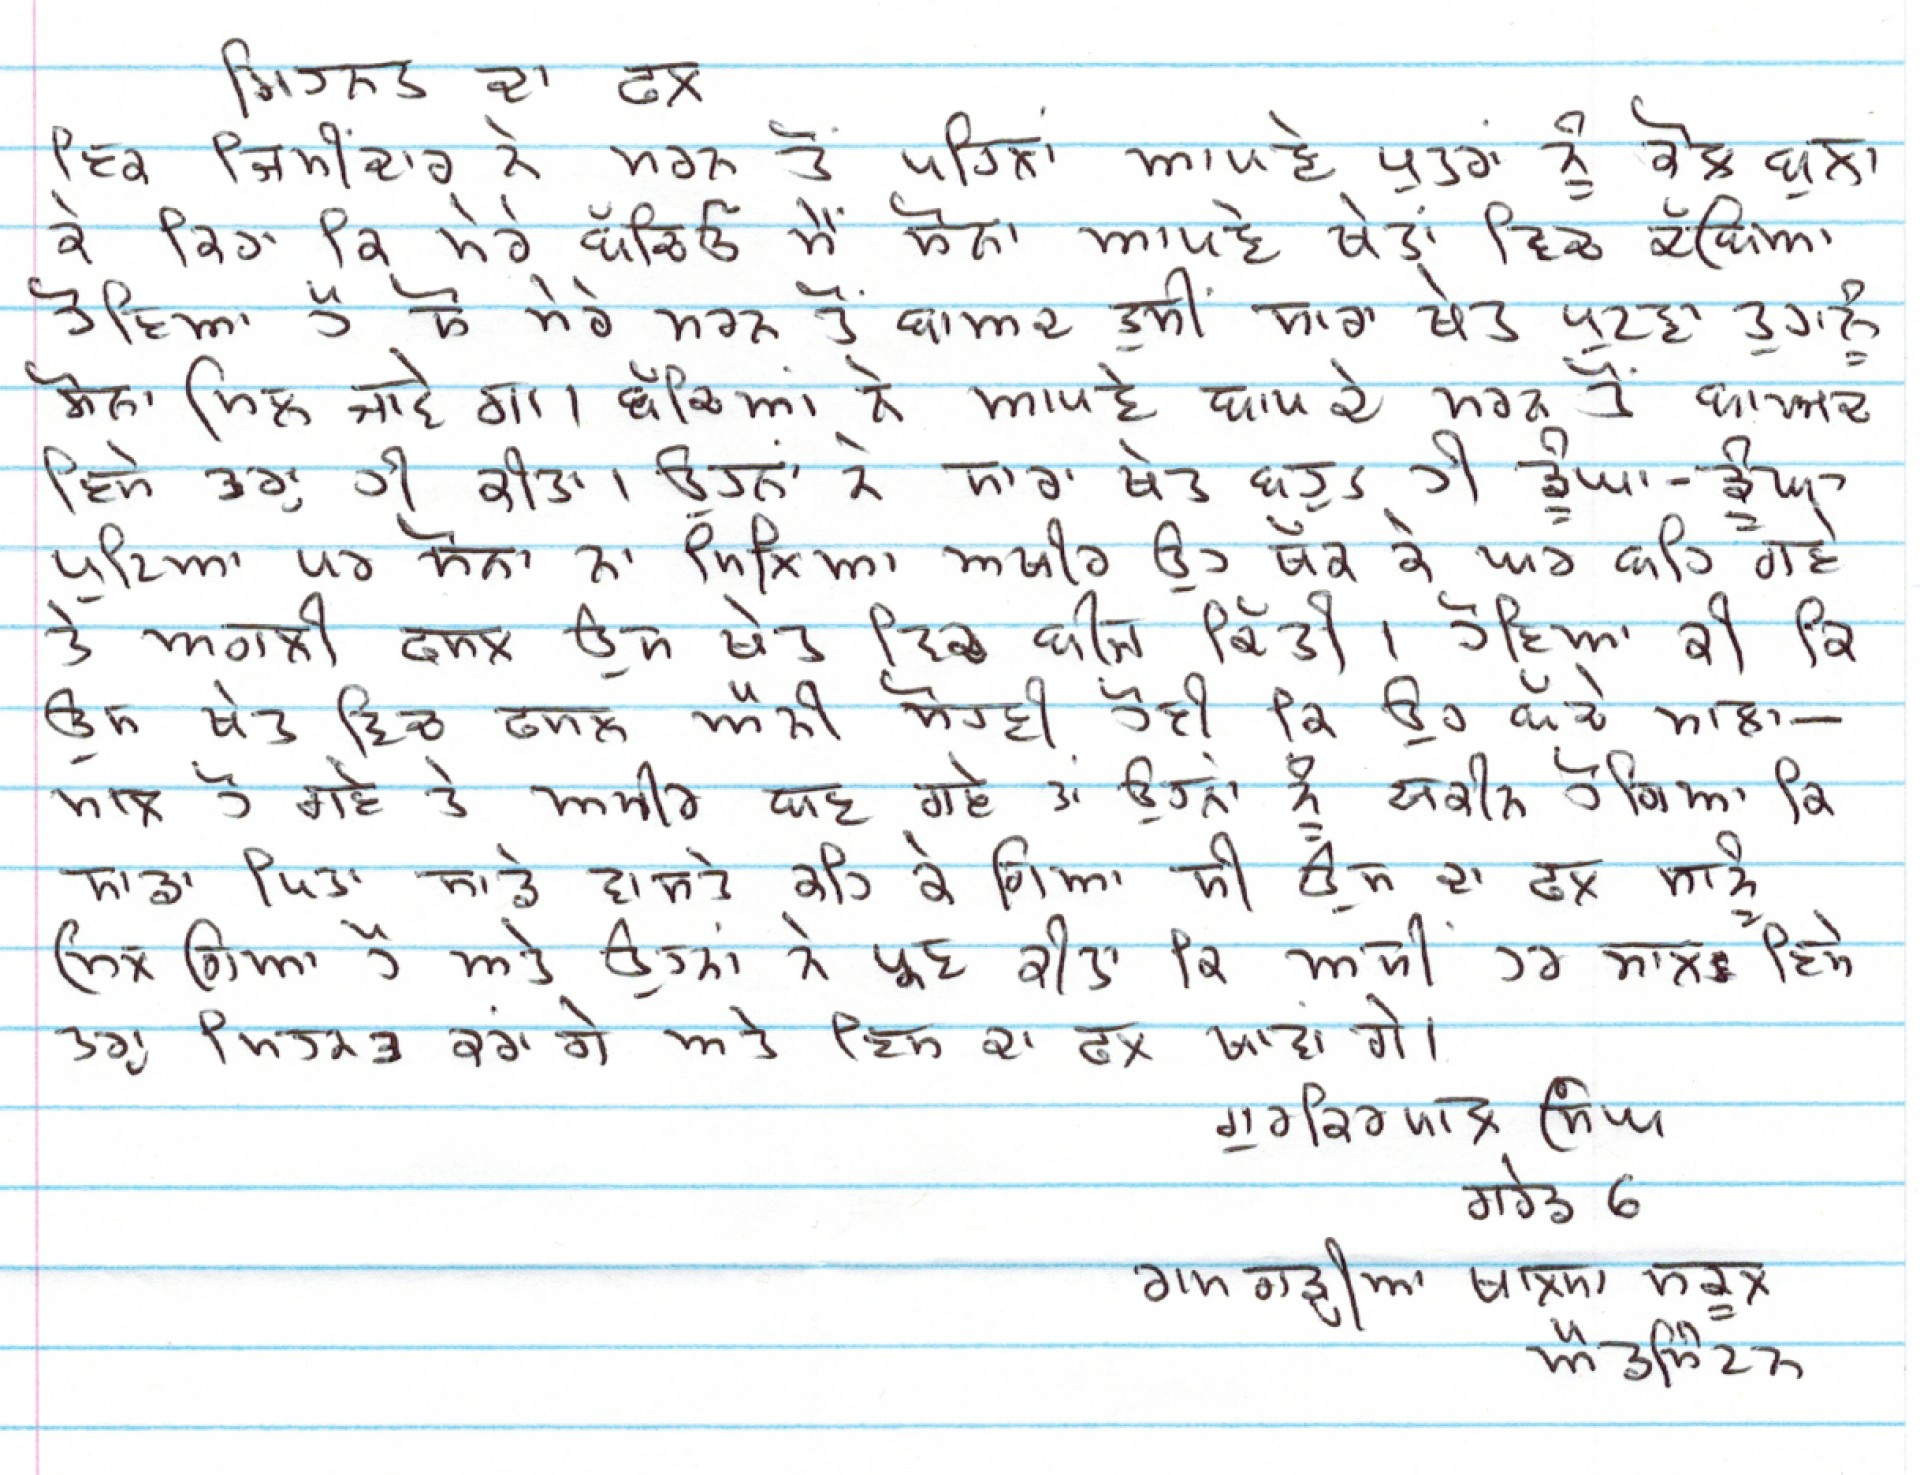 025 Essay Example Screenshot2013 20at3 50pm About Surprising Mom My Being Role Model Moments With Friends Happy Family 1920